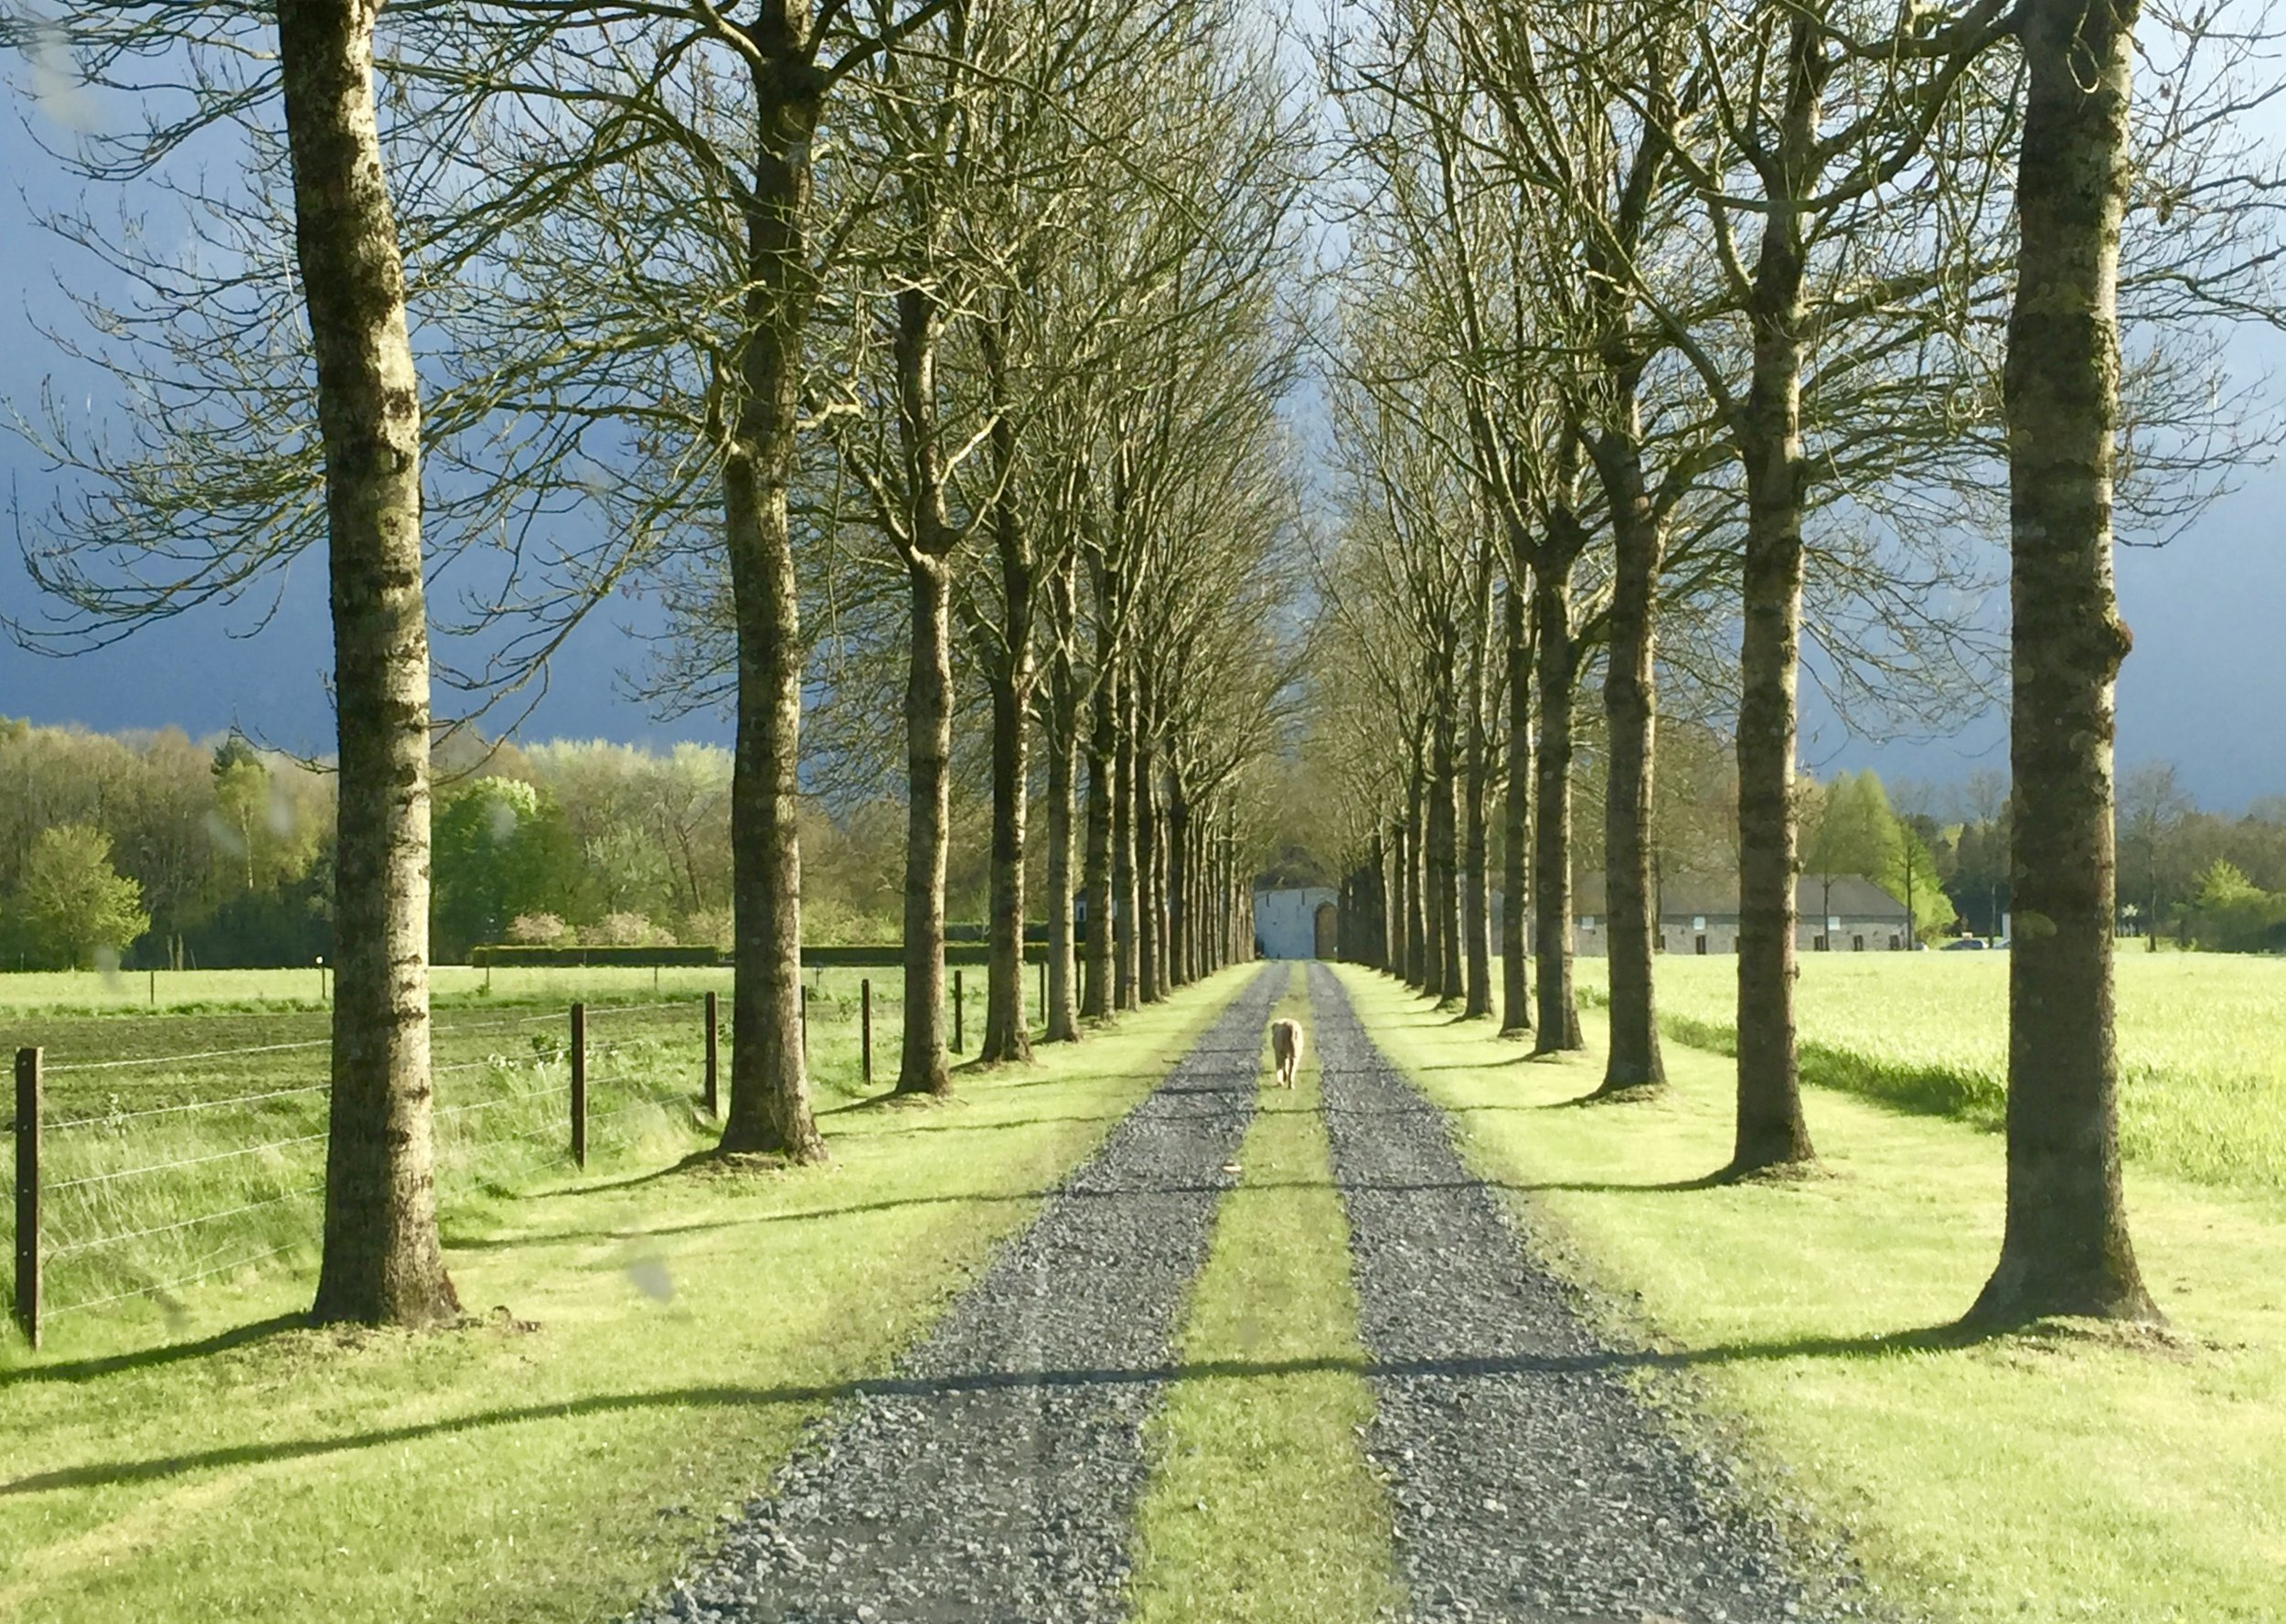 Scenery, history and beer    Backroads of Belgium    Get to know the less traveled roads of Belgium.